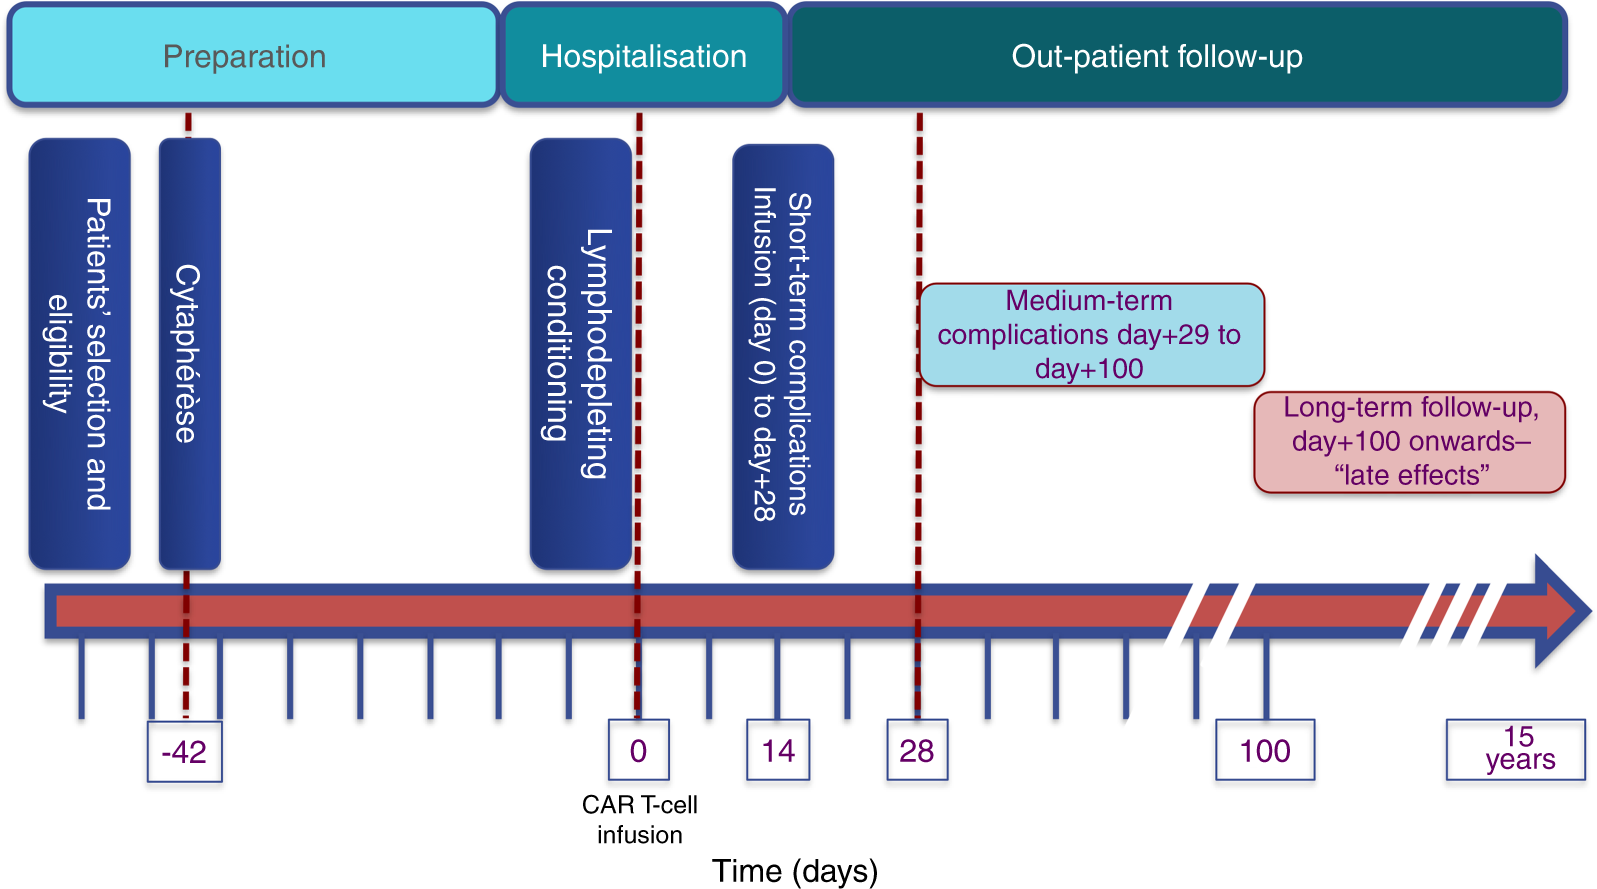 CAR T-cell therapy for the management of refractory/relapsed high-grade B-cell lymphoma: a practical overview